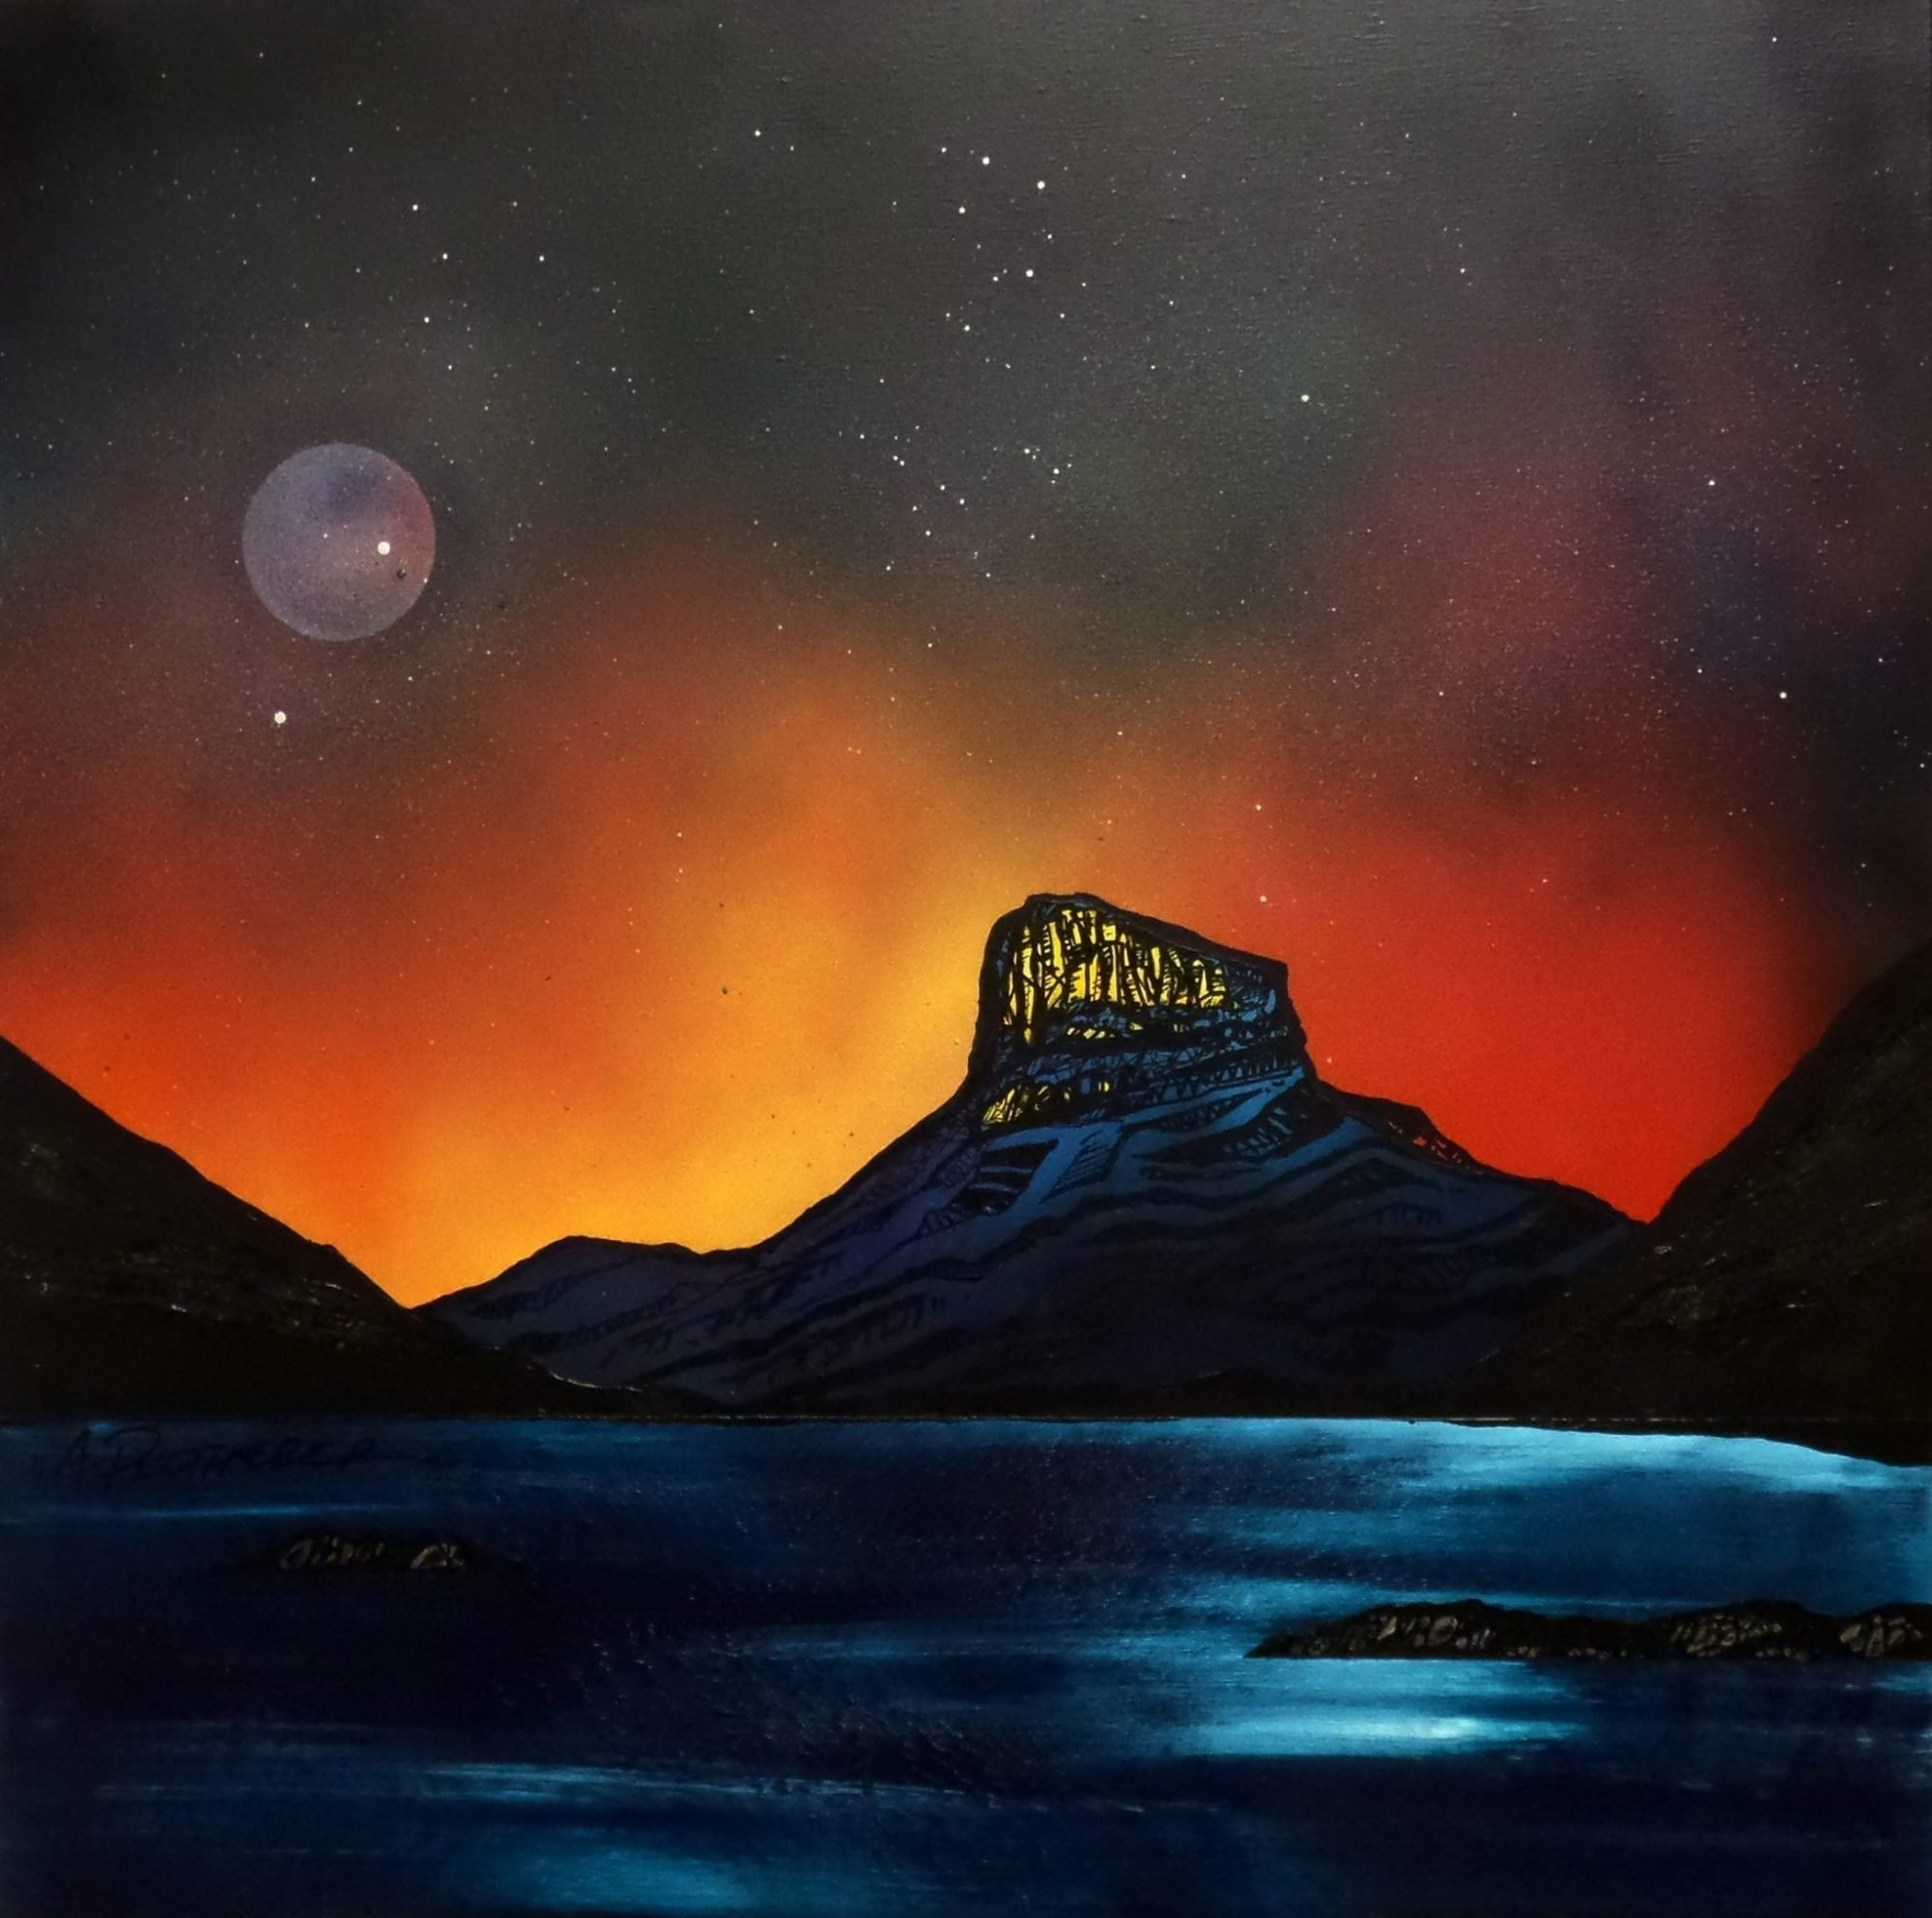 Stac Pollaidh, Inverpolly, Scotland - Original painting and prints by Contemporary Scottish landscape artist Andy Peutherer